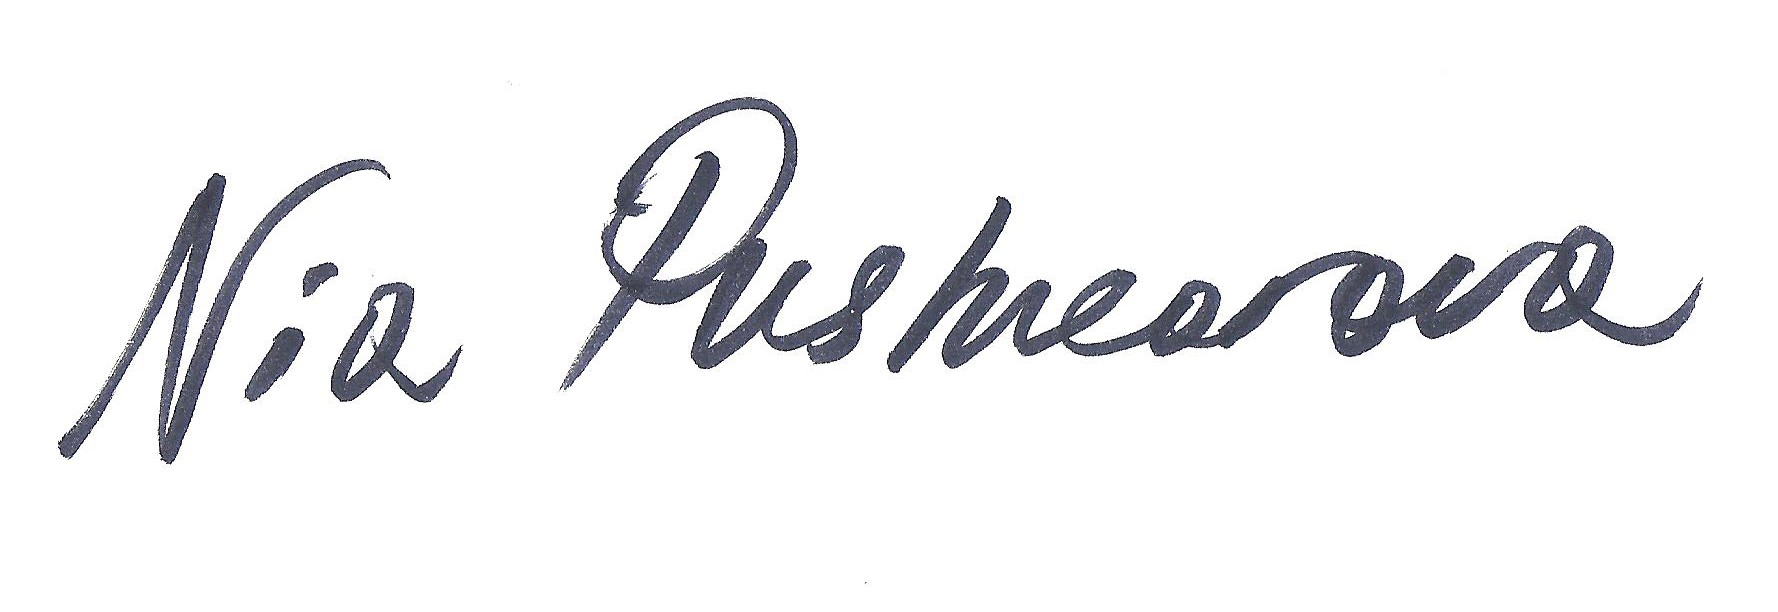 Nia Pushkarova's Signature